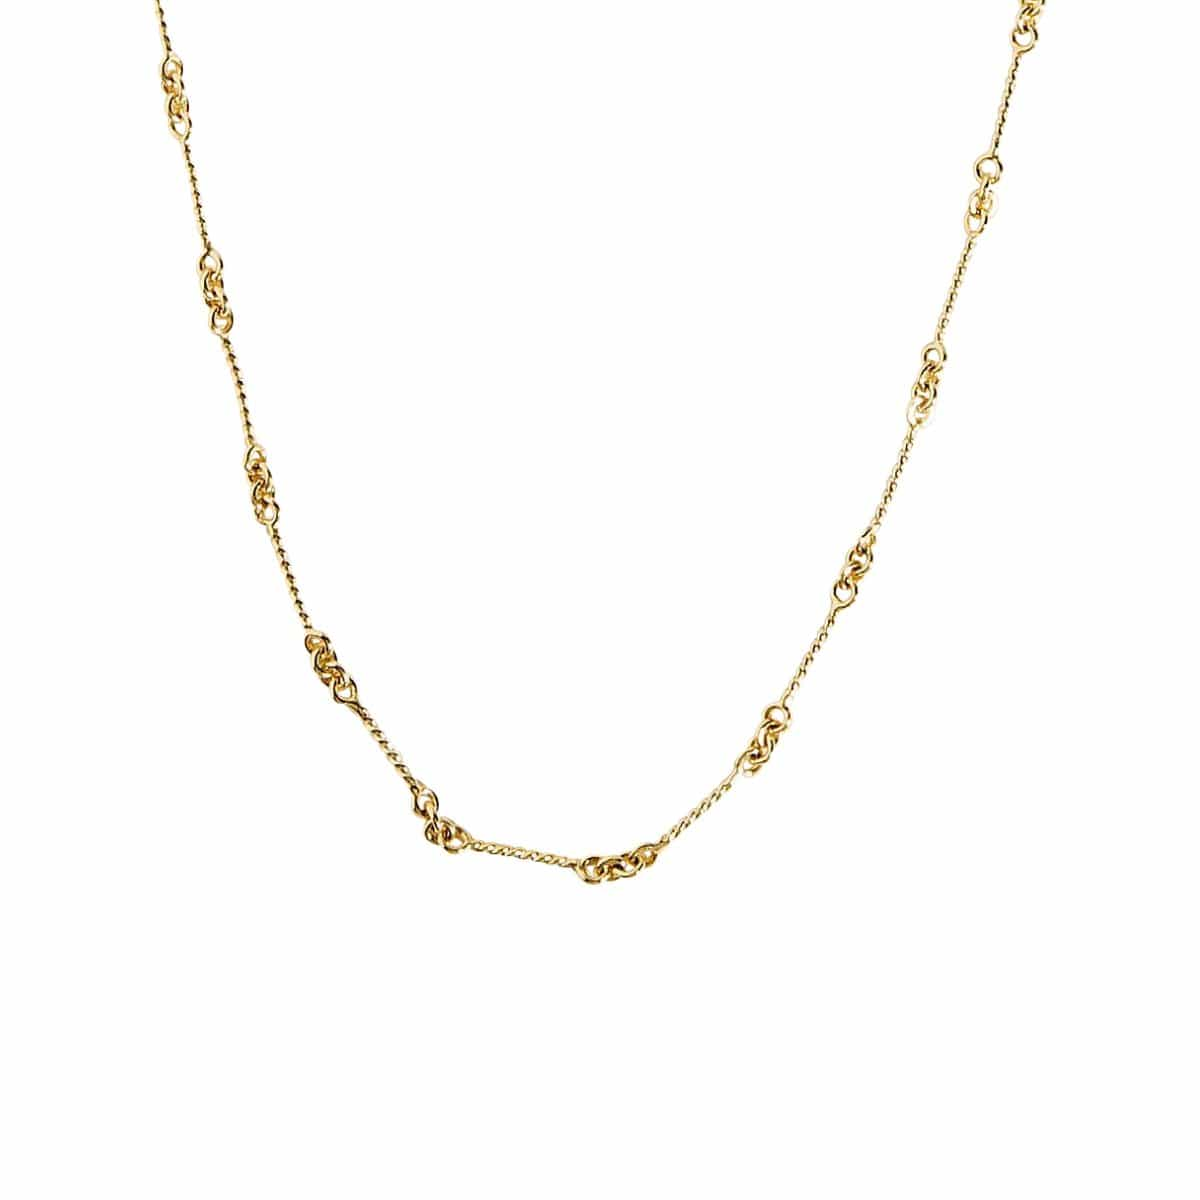 Haati Chai Necklaces Neelam Chain